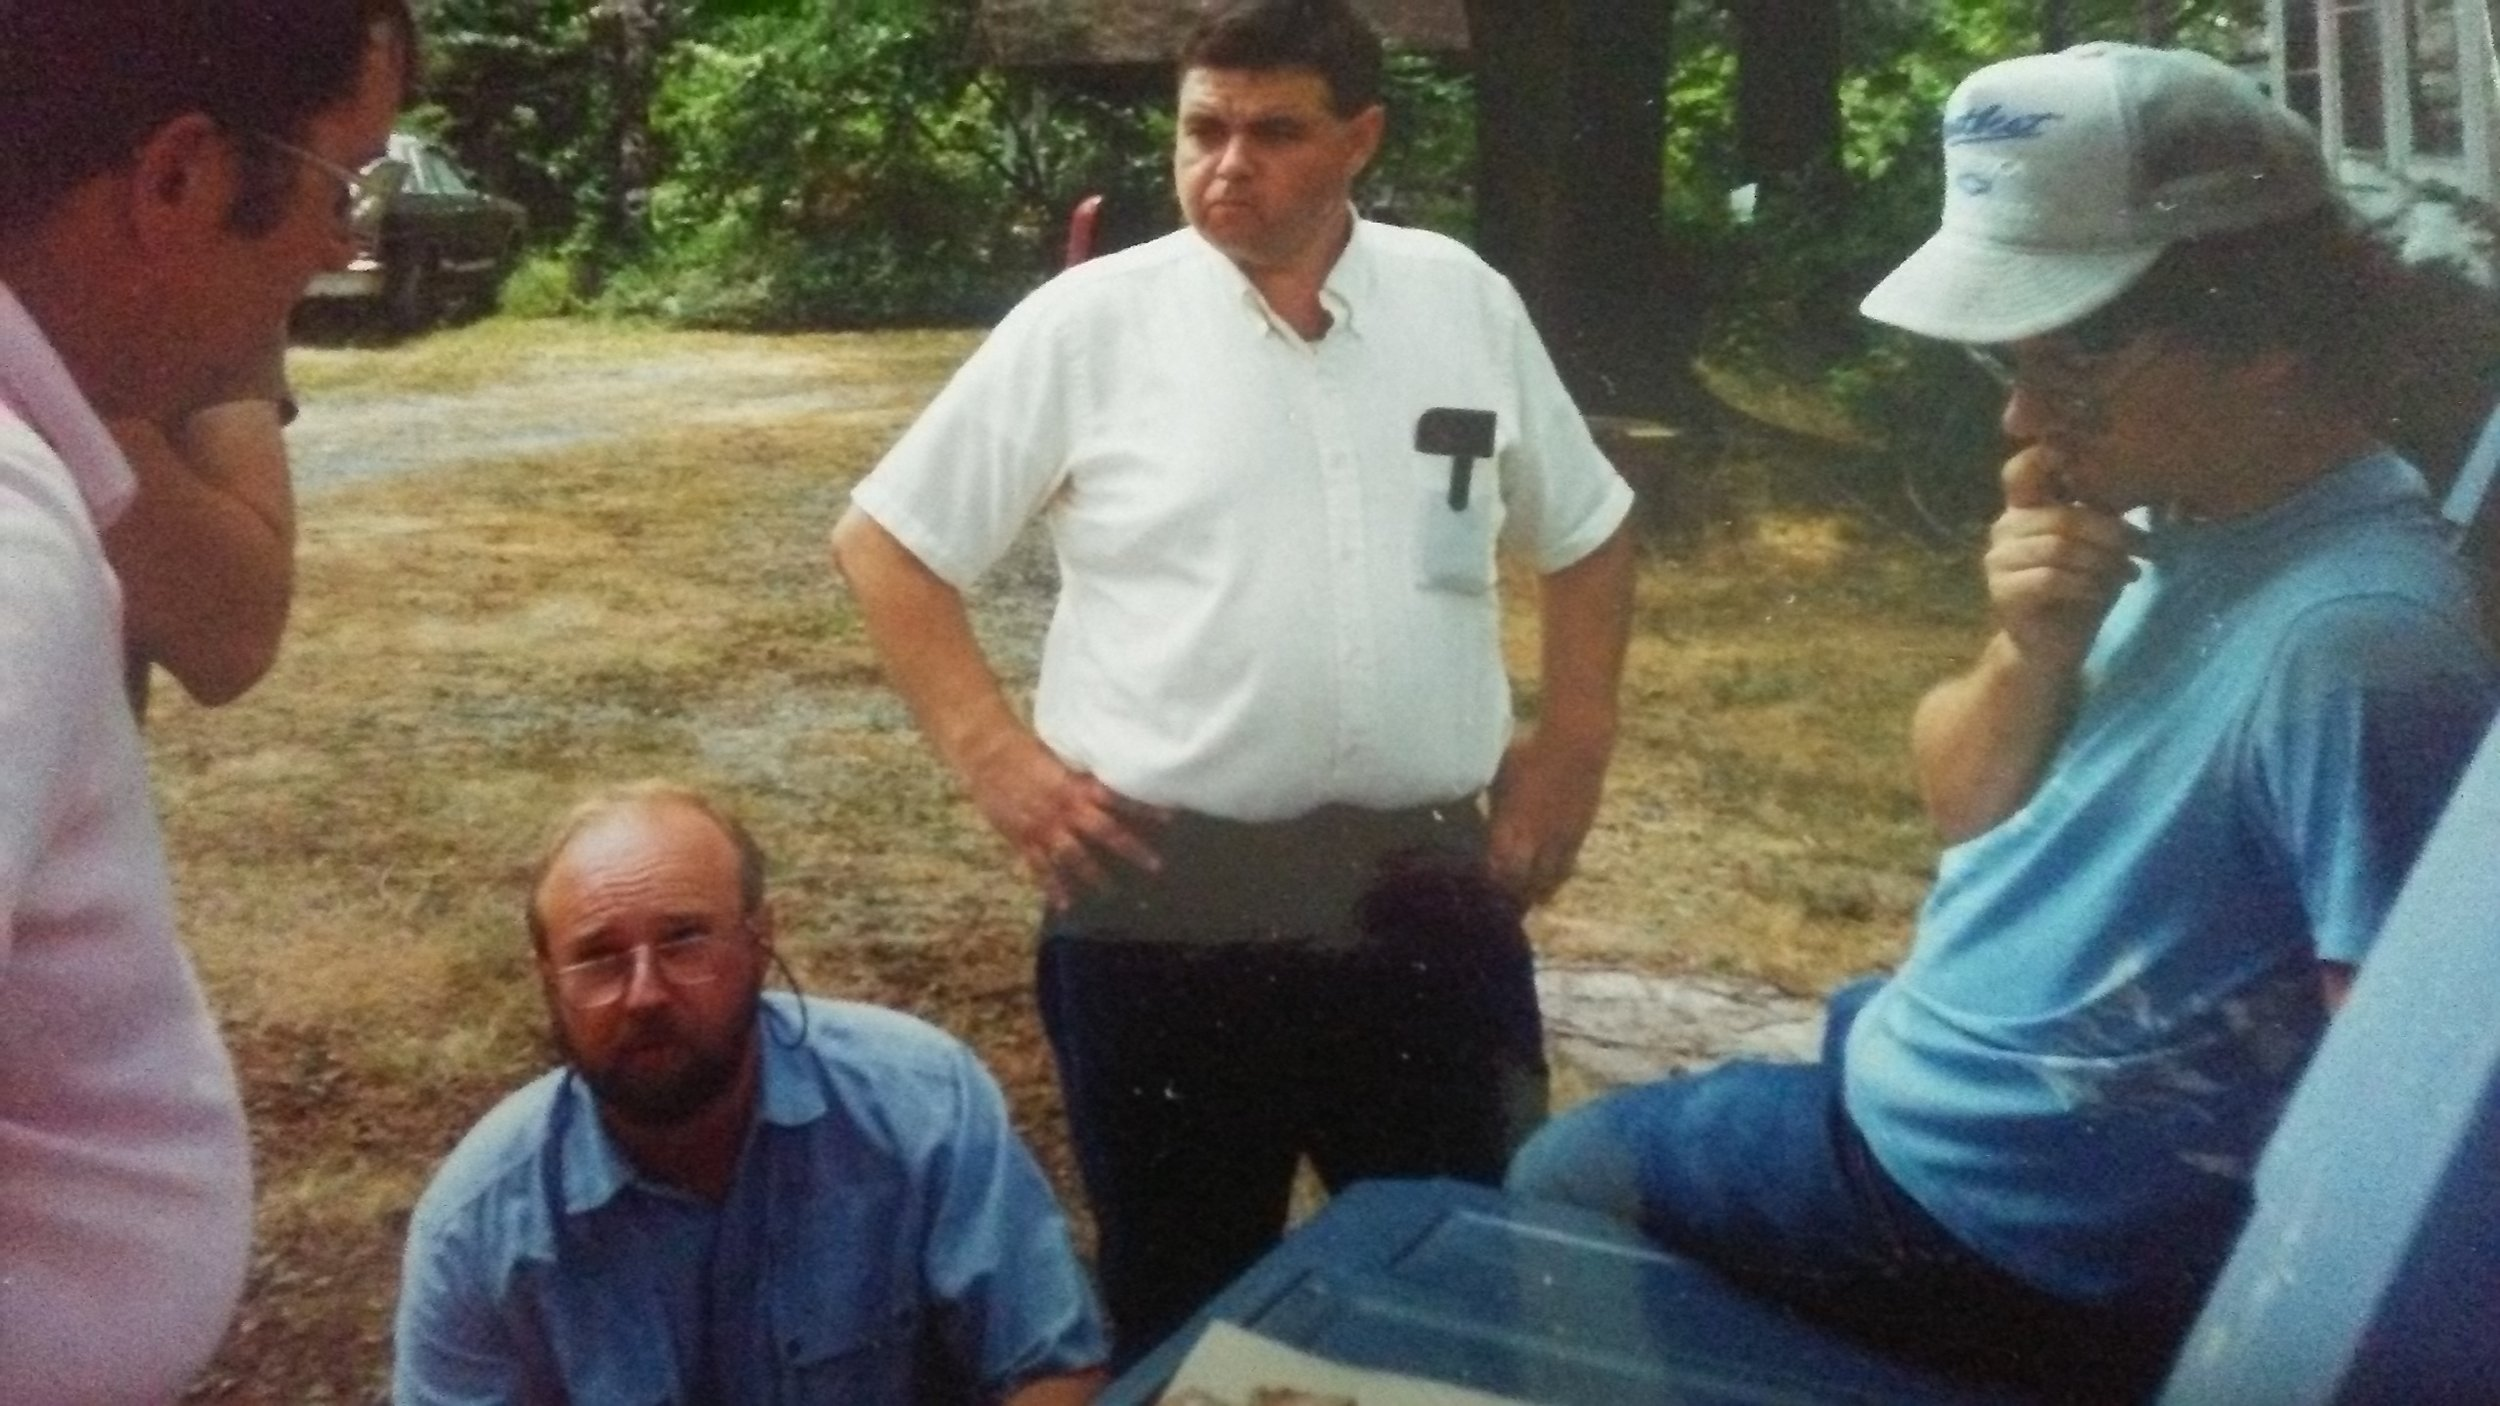 L-R George Demuth, Jim ..., Bill Wolfe, and Dr. Jeb Bowen at an ASO Picnic hosted By Col. Raymond Vietzen at his museum and home located in Elyria, Ohio. While the original Indian Ridge Museum is no longer there, there is a New Indian Ridge Museum curated by Col. Matt Nahorn.